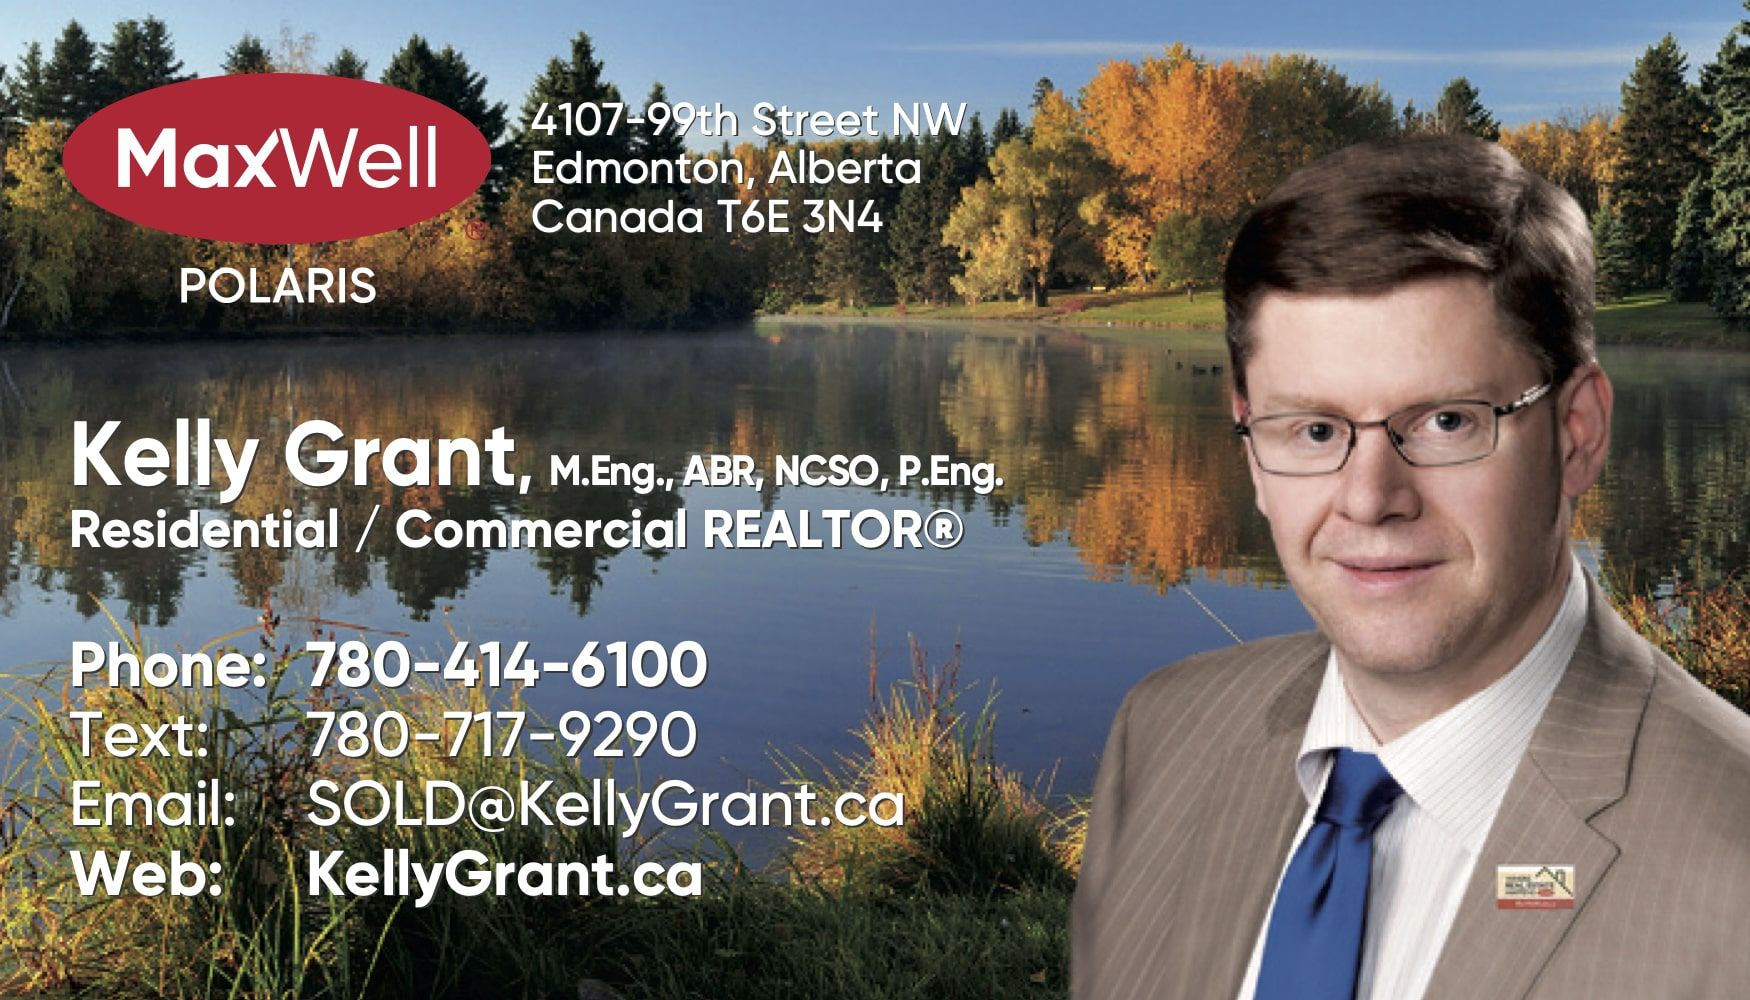 Kelly Grant MaxWell Business Card 1